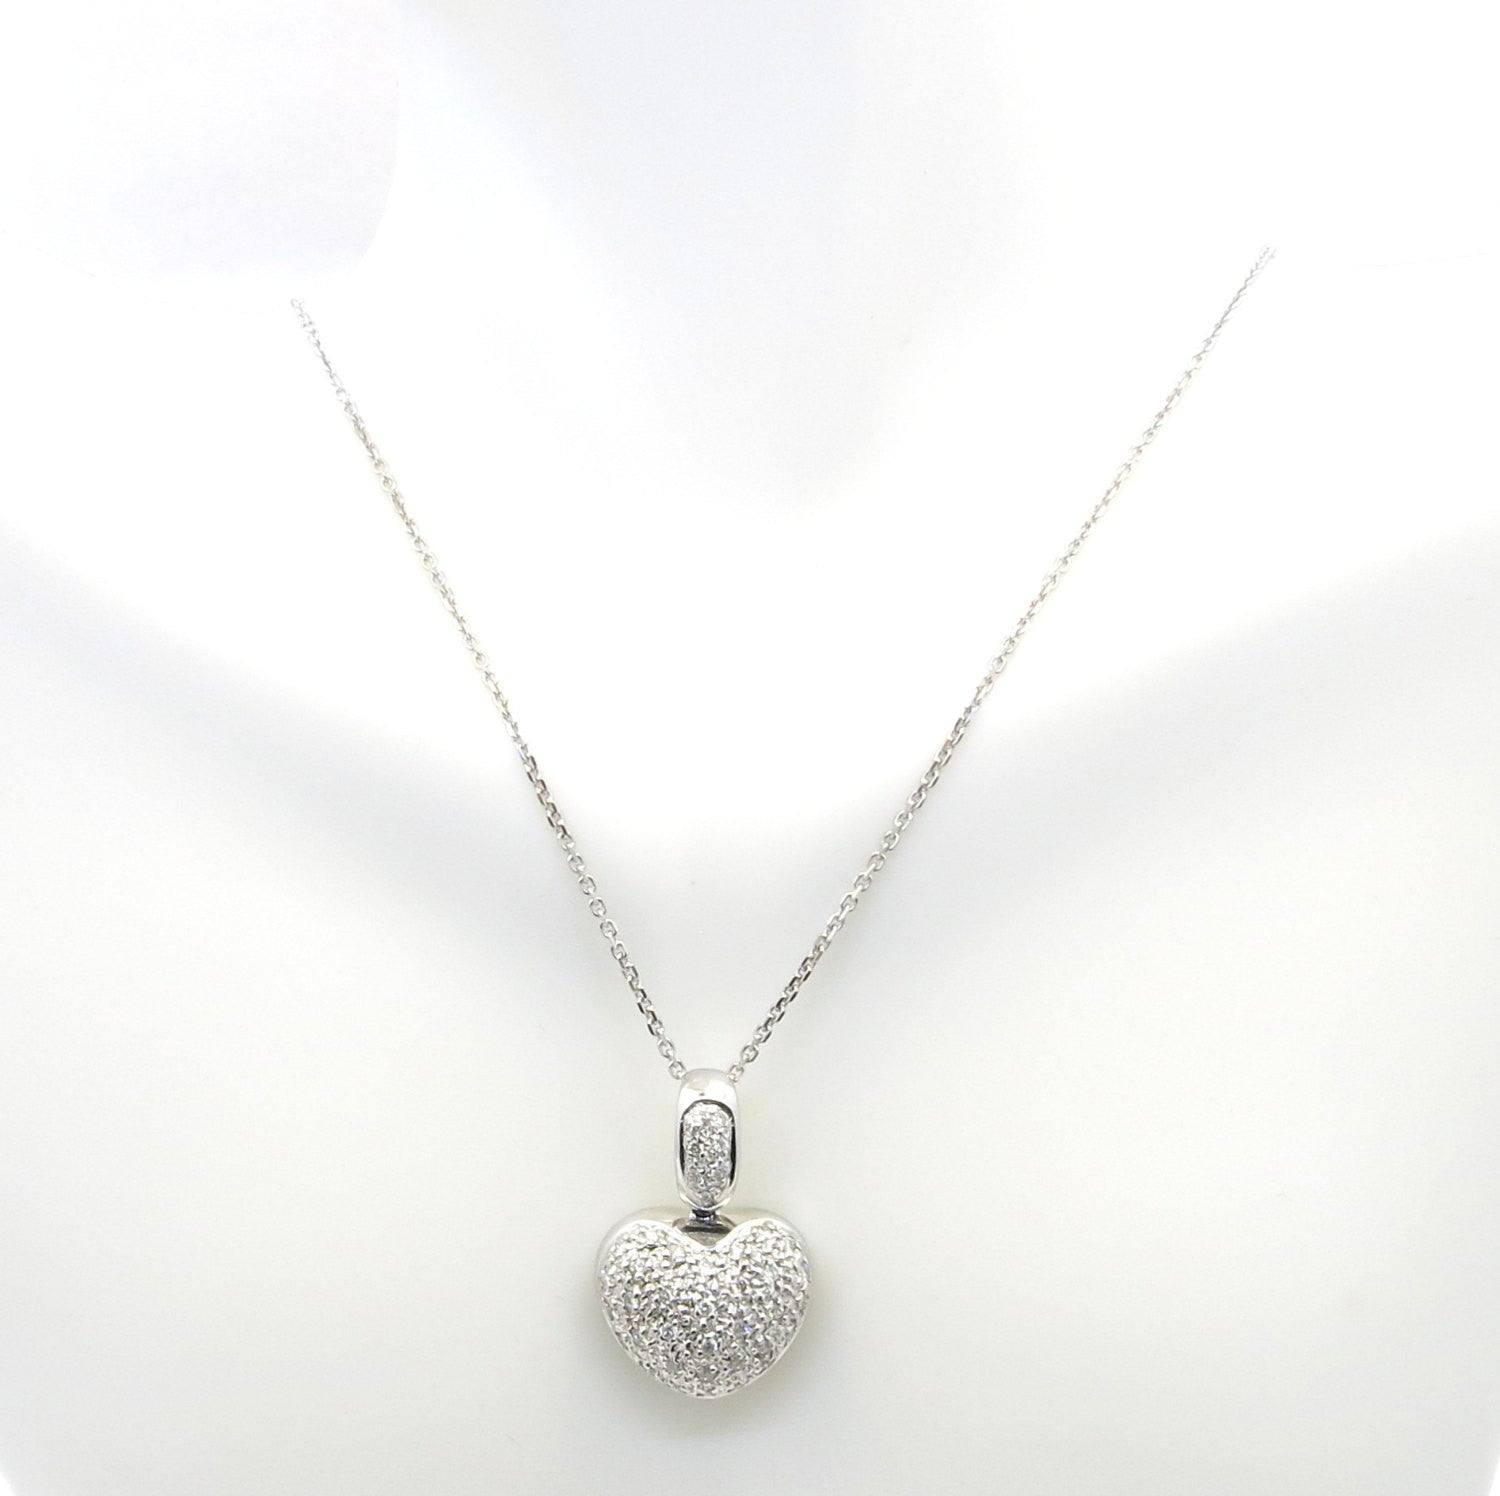 Diamond Heart Necklace/Pendant, 14k White Gold